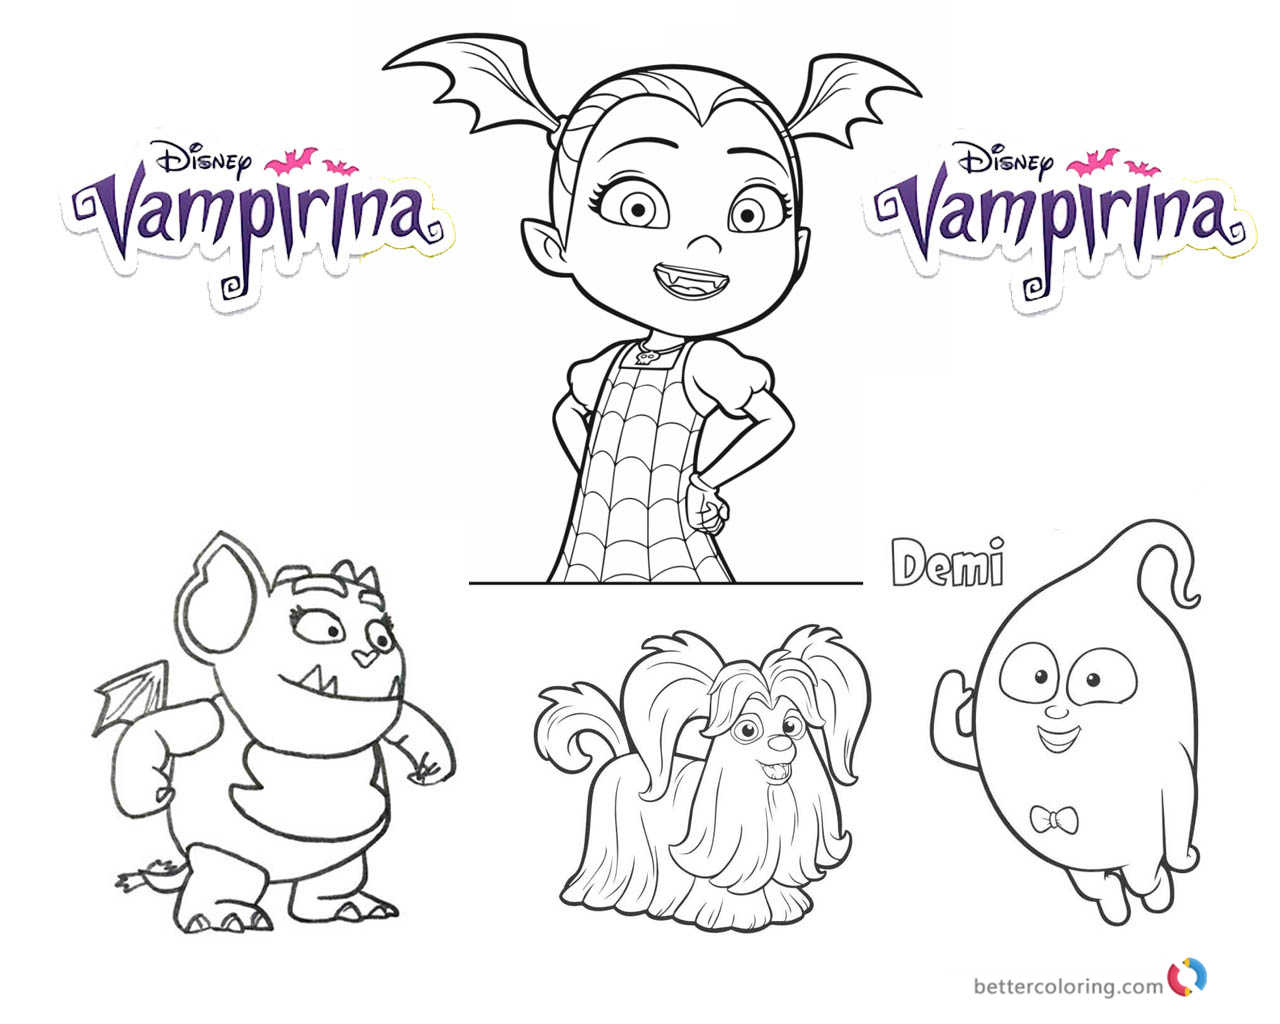 Vampirina coloring pages vampirina coloring pages vampirina and cute characters free